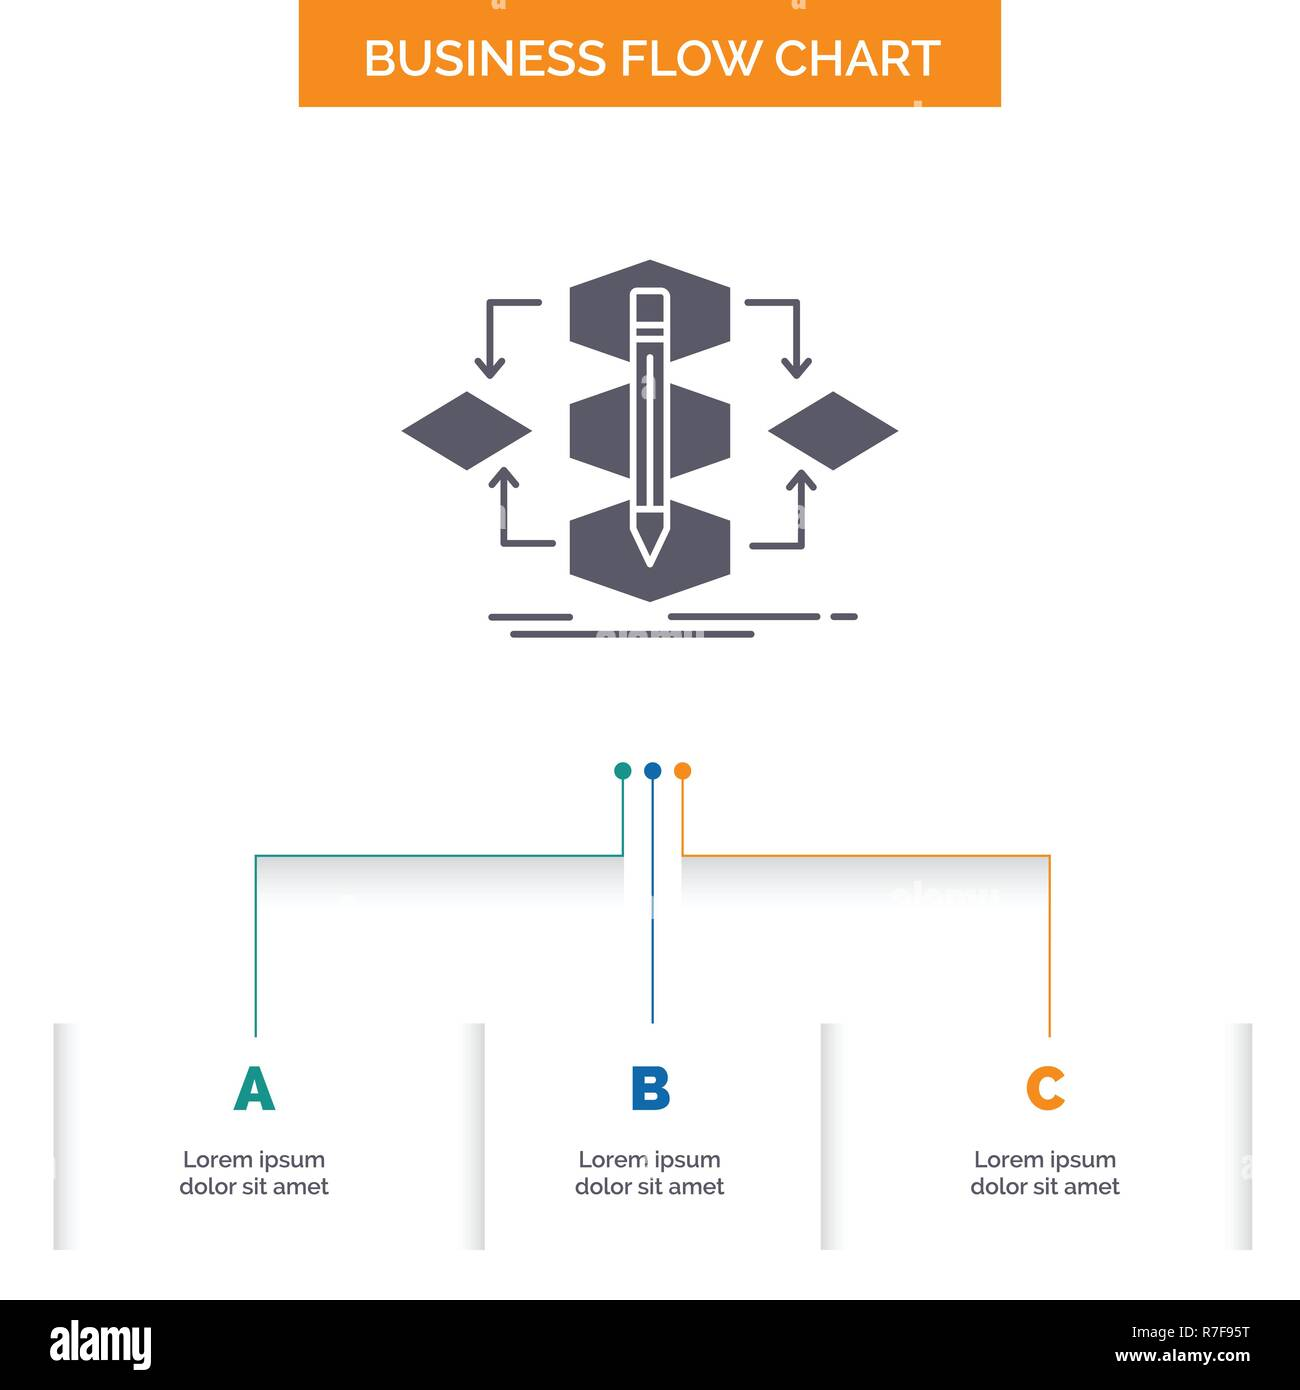 hight resolution of algorithm design method model process business flow chart design with 3 steps glyph icon for presentation background template place for text